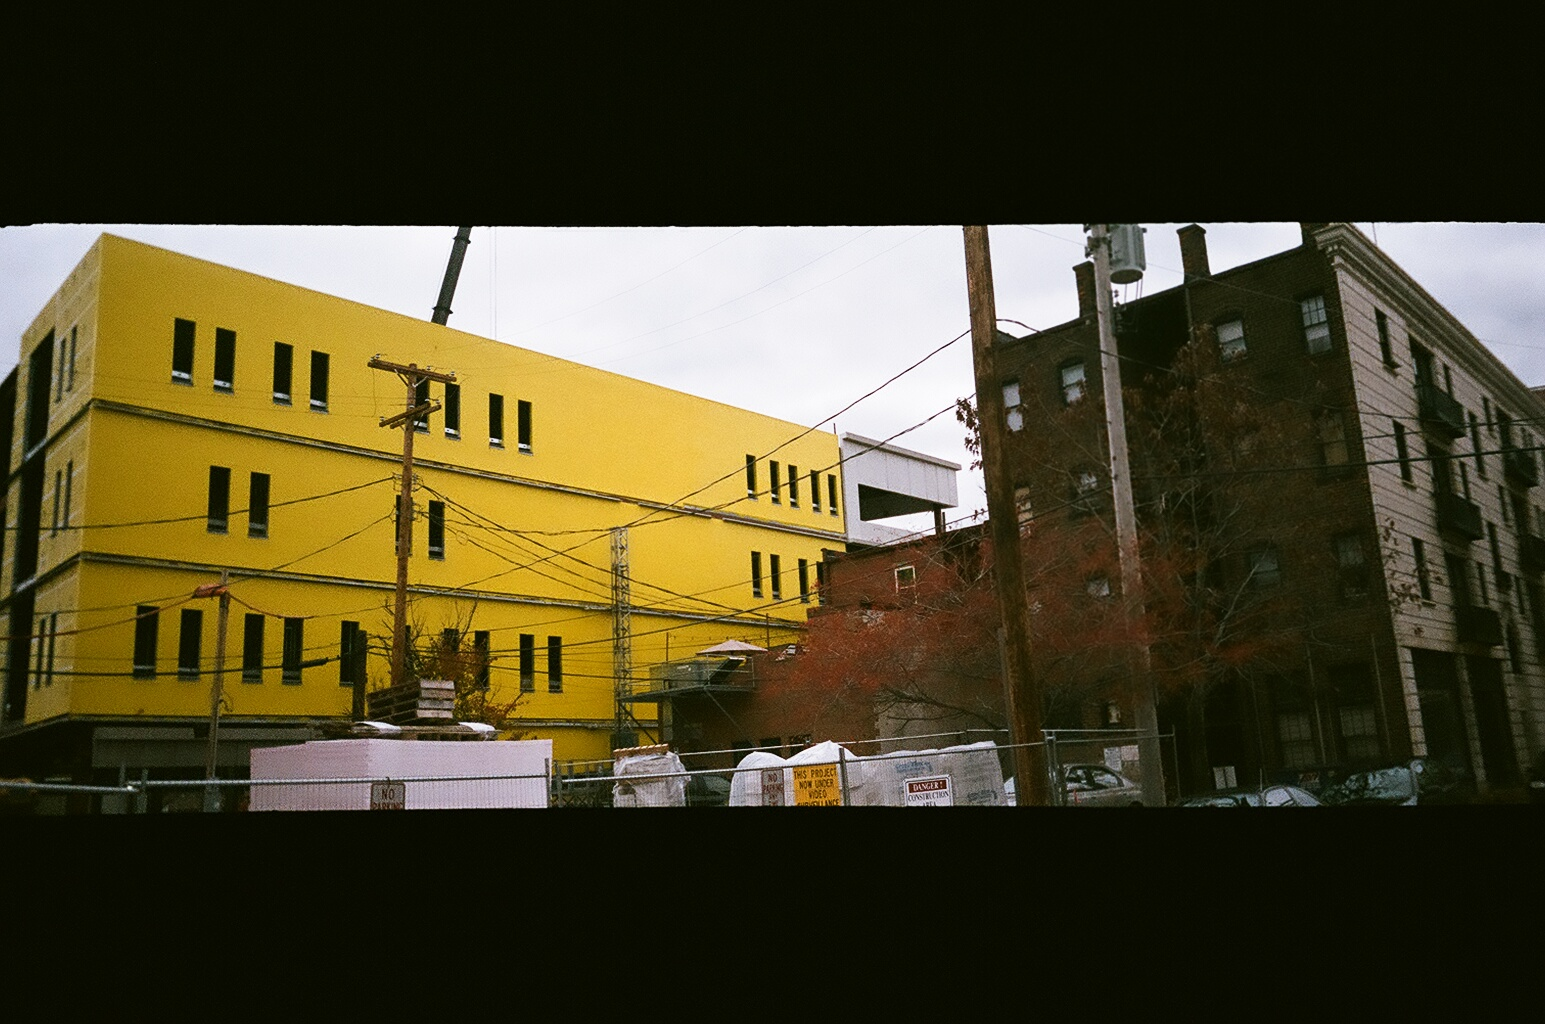 Big yellow building next to Euclid Tavern